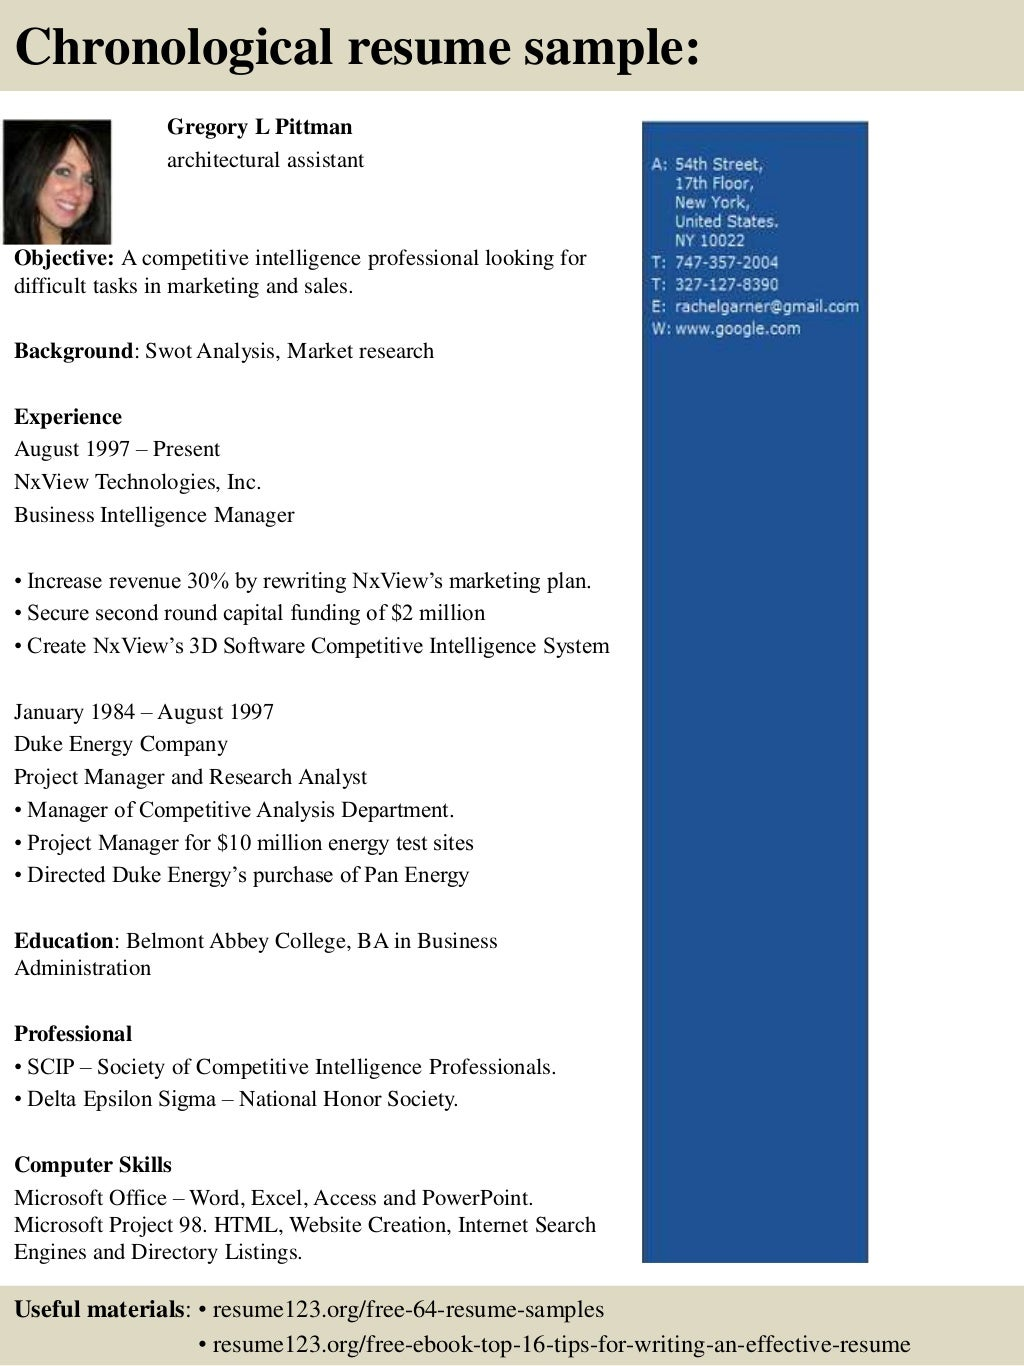 top 8 architectural assistant resume samples